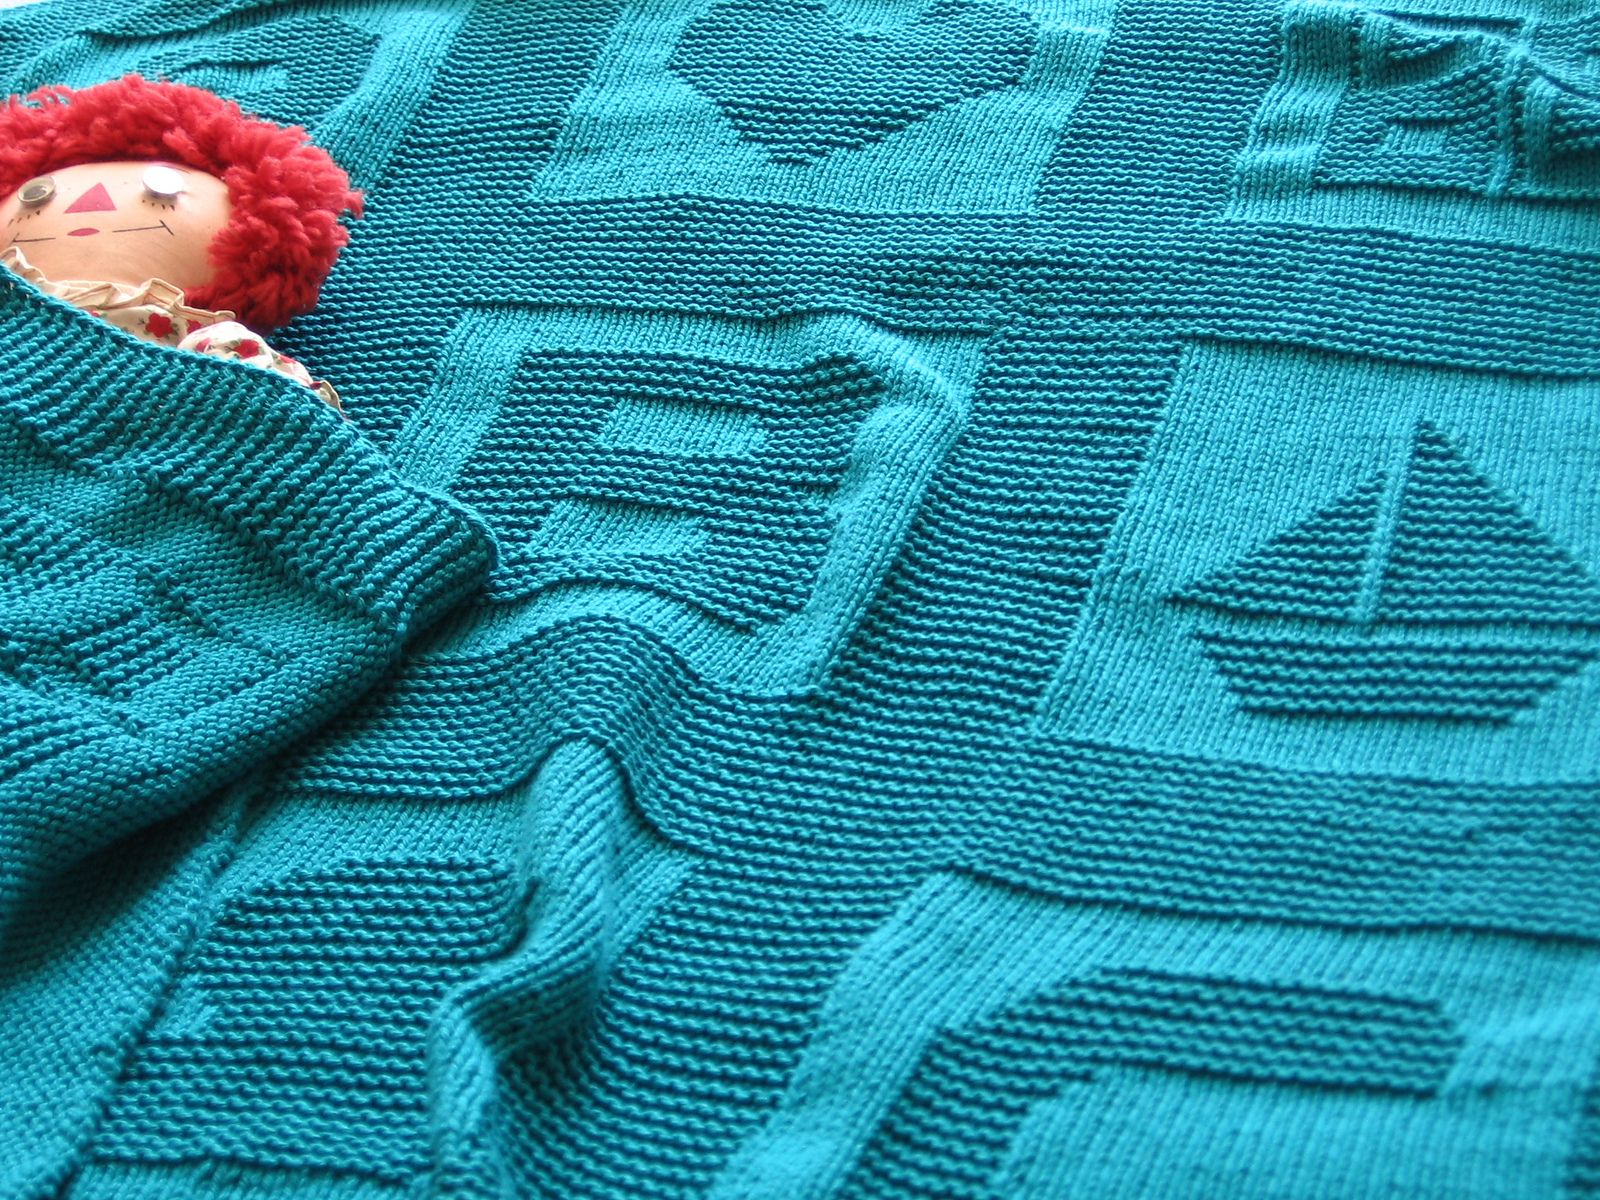 ABC Baby Blanket pattern by Jenny Williams | Knitted baby ...